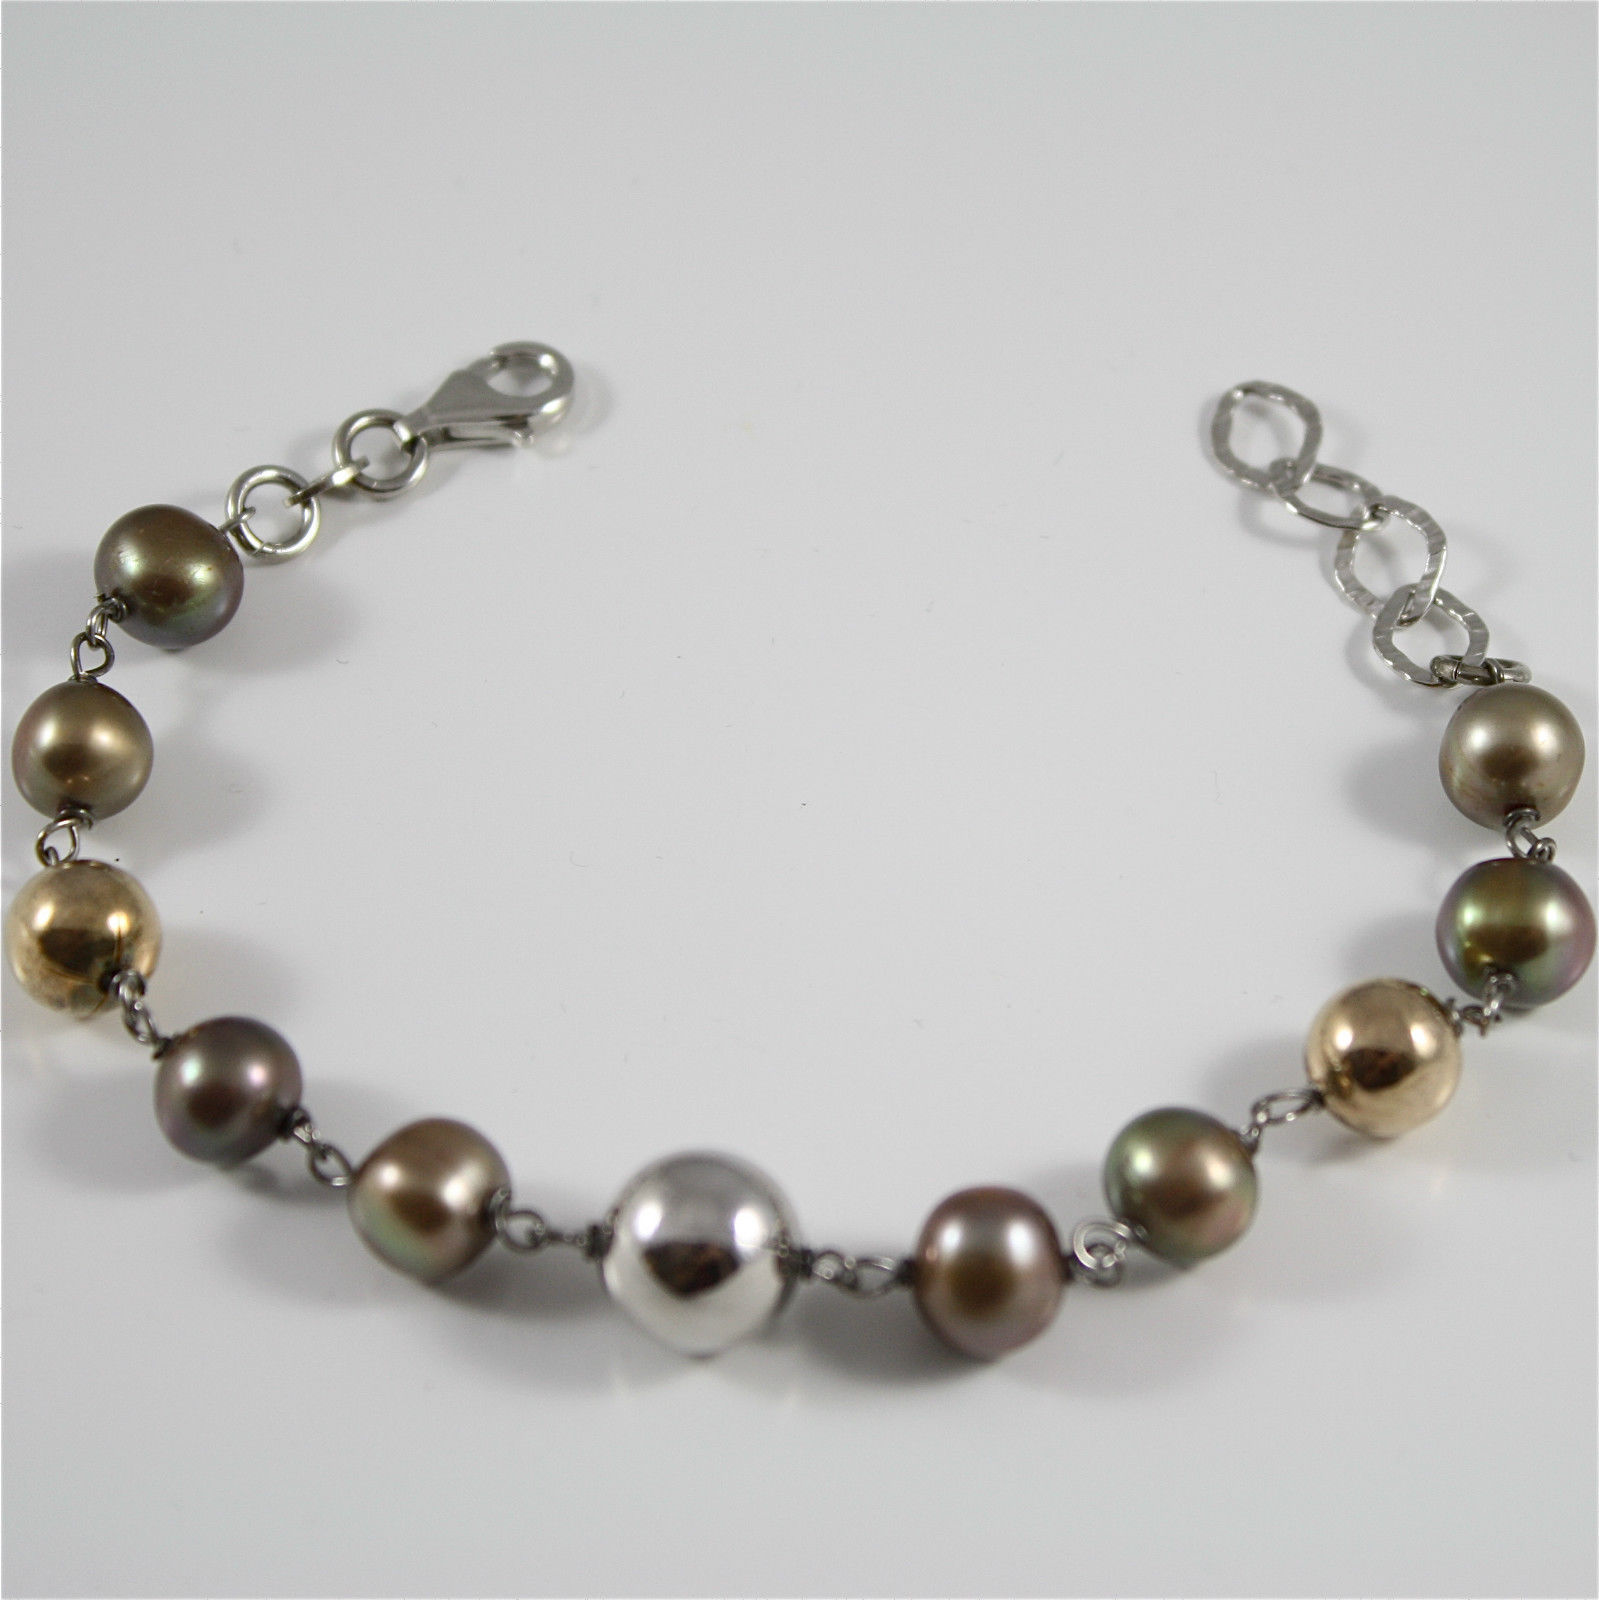 Bracelet in Sterling Silver 925 Gold Plated and Rhodium with Pearls Brown and...